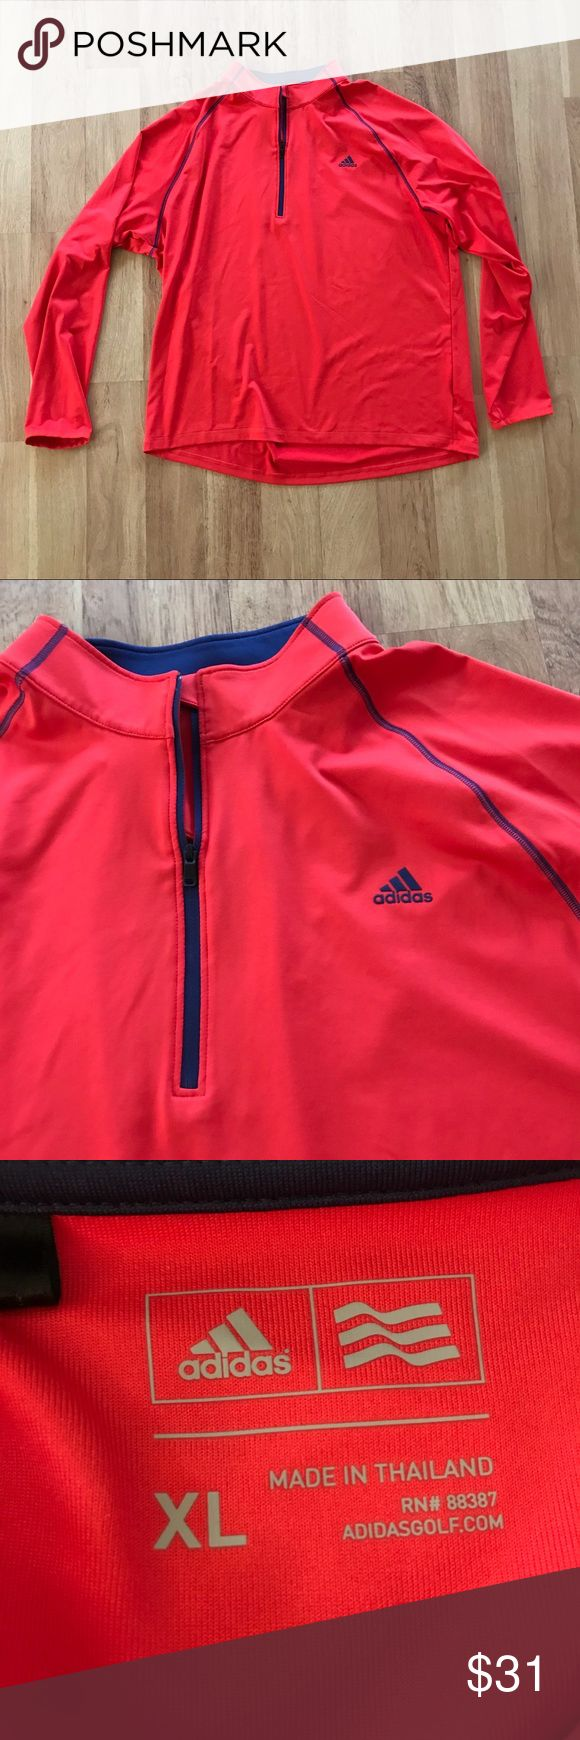 Men's Adidas Orange and Blue Quarter Zip Jacket ⚜️I love receiving offers through the offer button!⚜️ Good condition, as seen in pictures! Fast same or next day shipping!📨 Open to offers but I don't negotiate in the comments so please use the offer button😊 Check out the rest of my closet for more Adidas, Lululemon, Tory Burch, Urban Outfitters, Free People, Anthropologie, Victoria's Secret, Sam Edelman, Topshop, Asos, Revolve, Brandy Melville, Zara, and American Apparel! adidas Jackets…